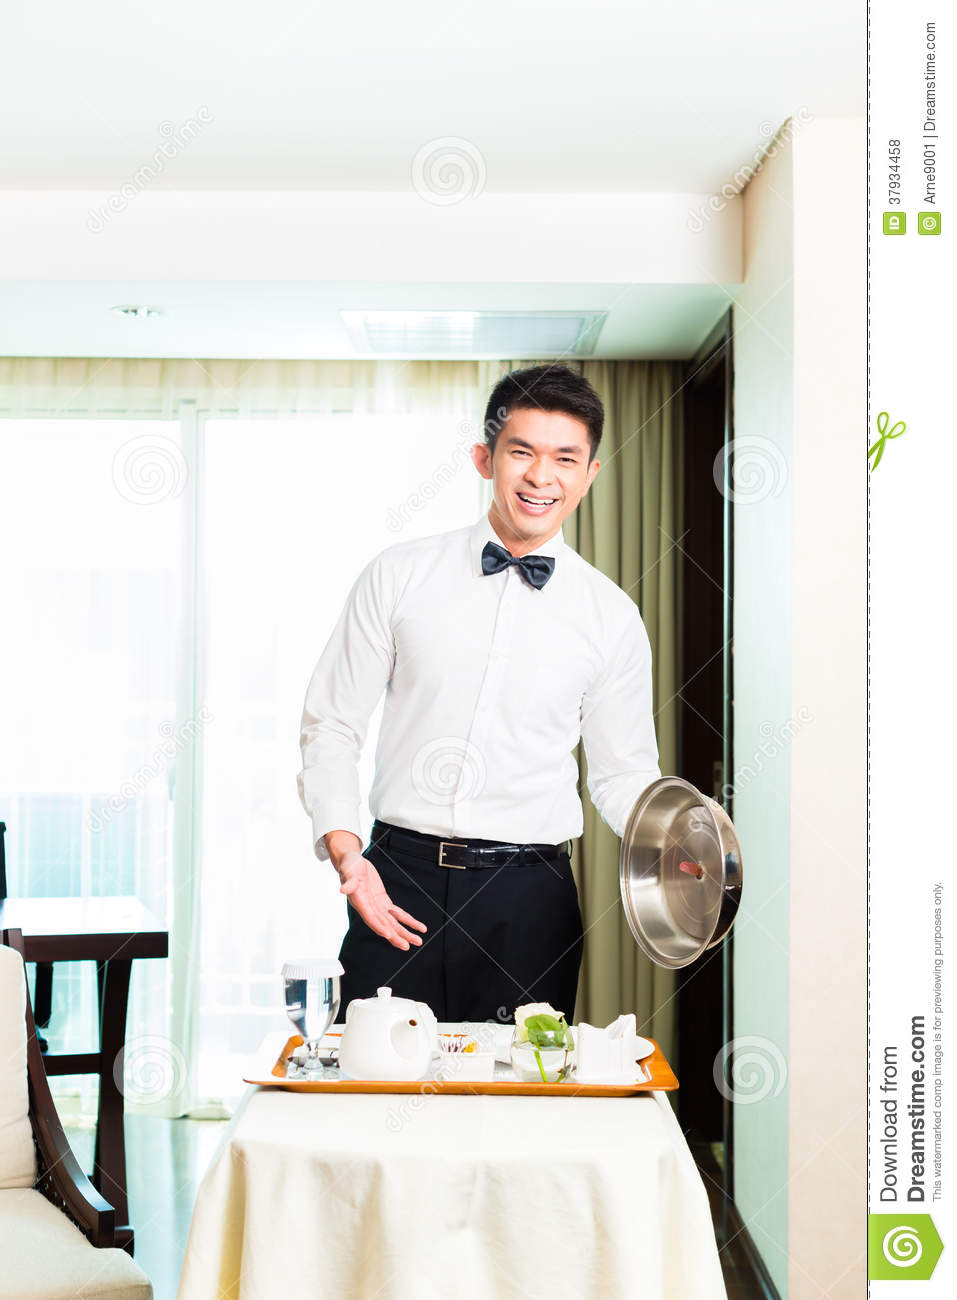 Room Service: Hotel Room Service Serving Food Stock Photo